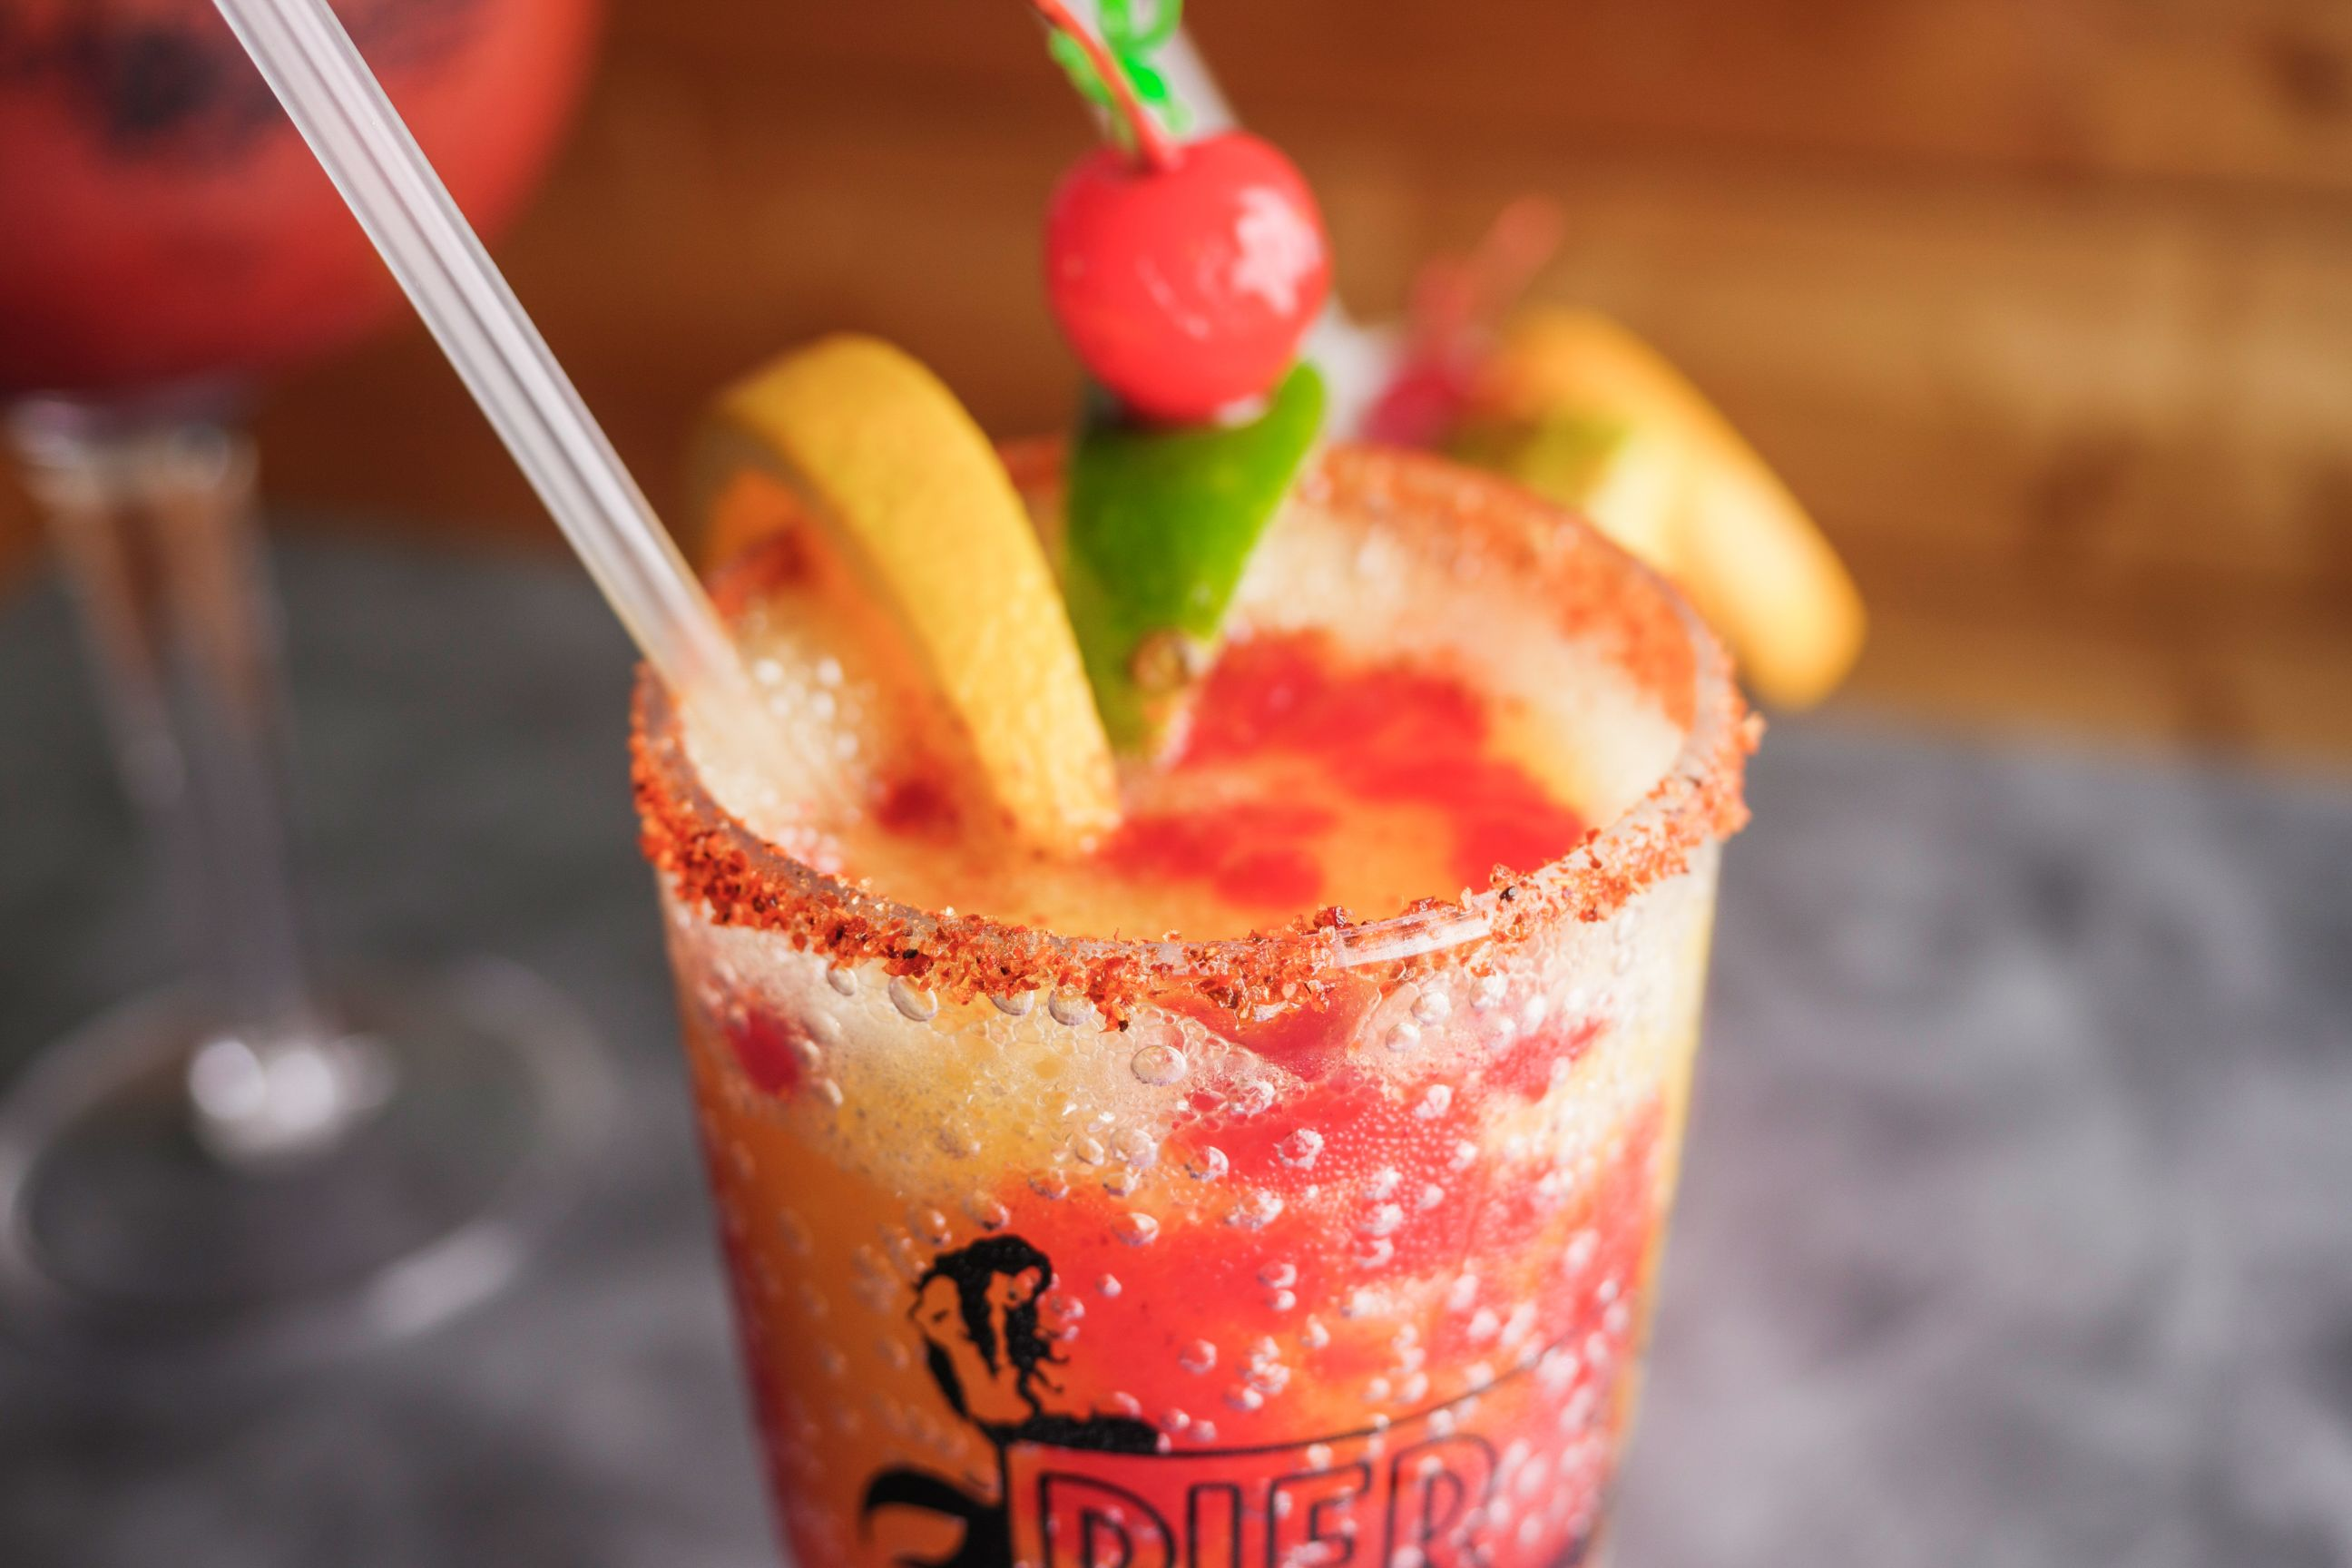 tropical cocktail with chili powder rim, garnished with lemon, lime and cherry